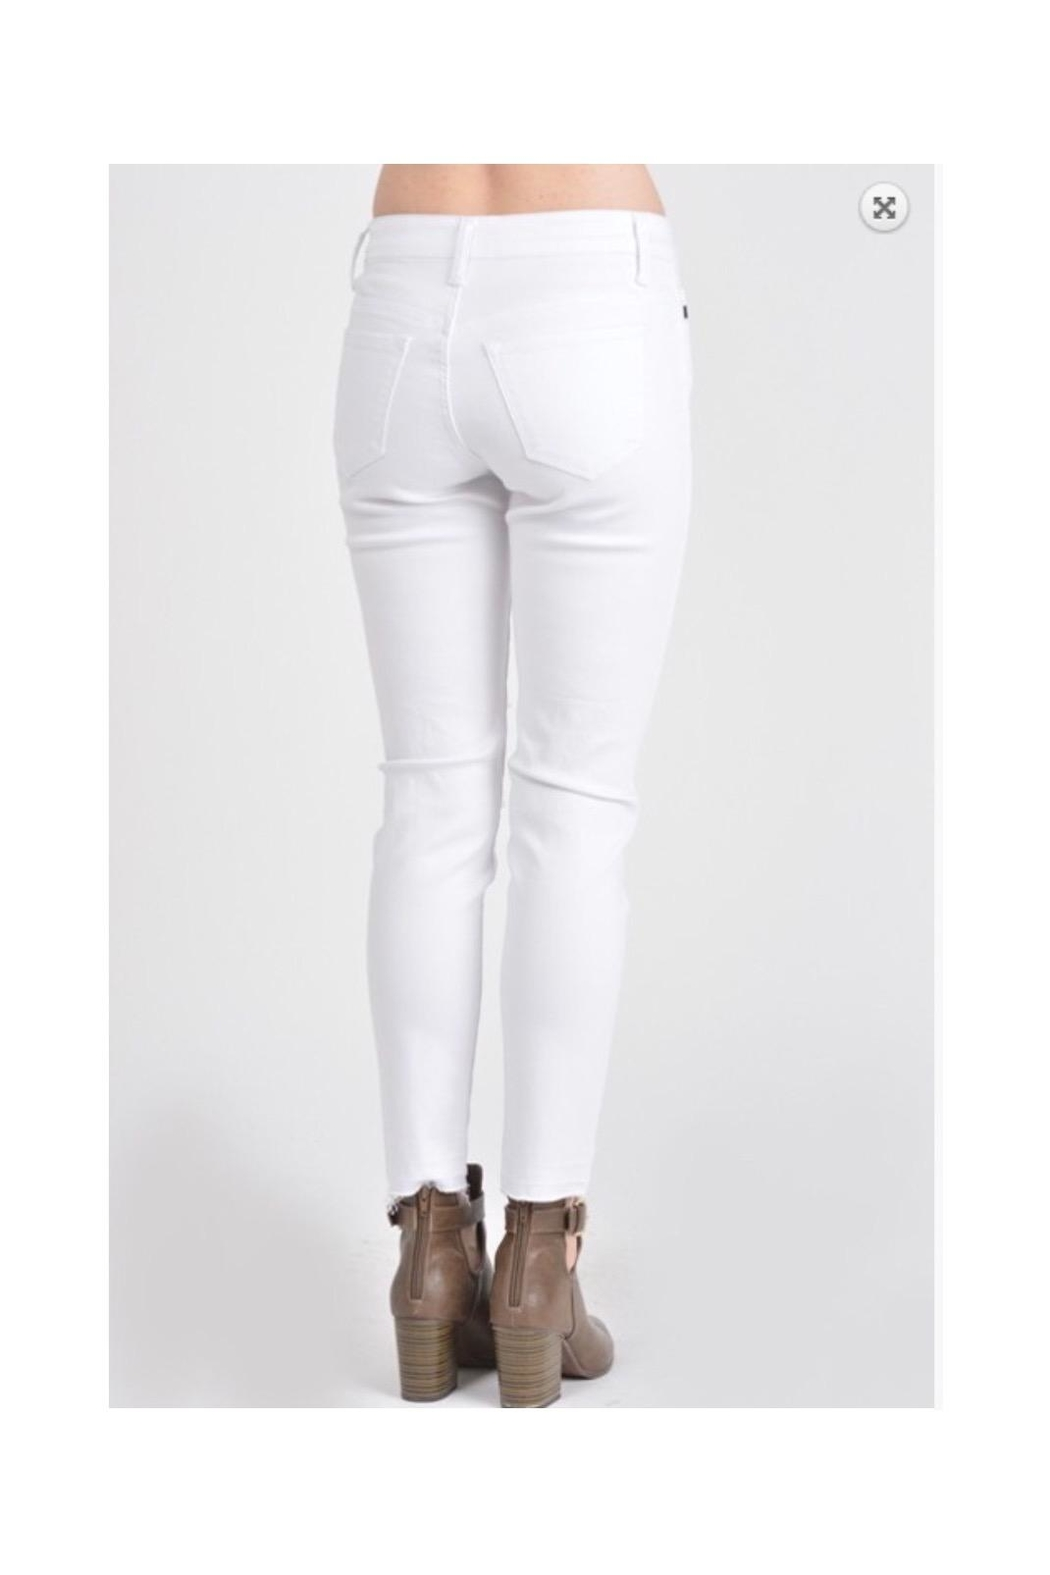 KanCan White Distressed Jeans - Back Cropped Image